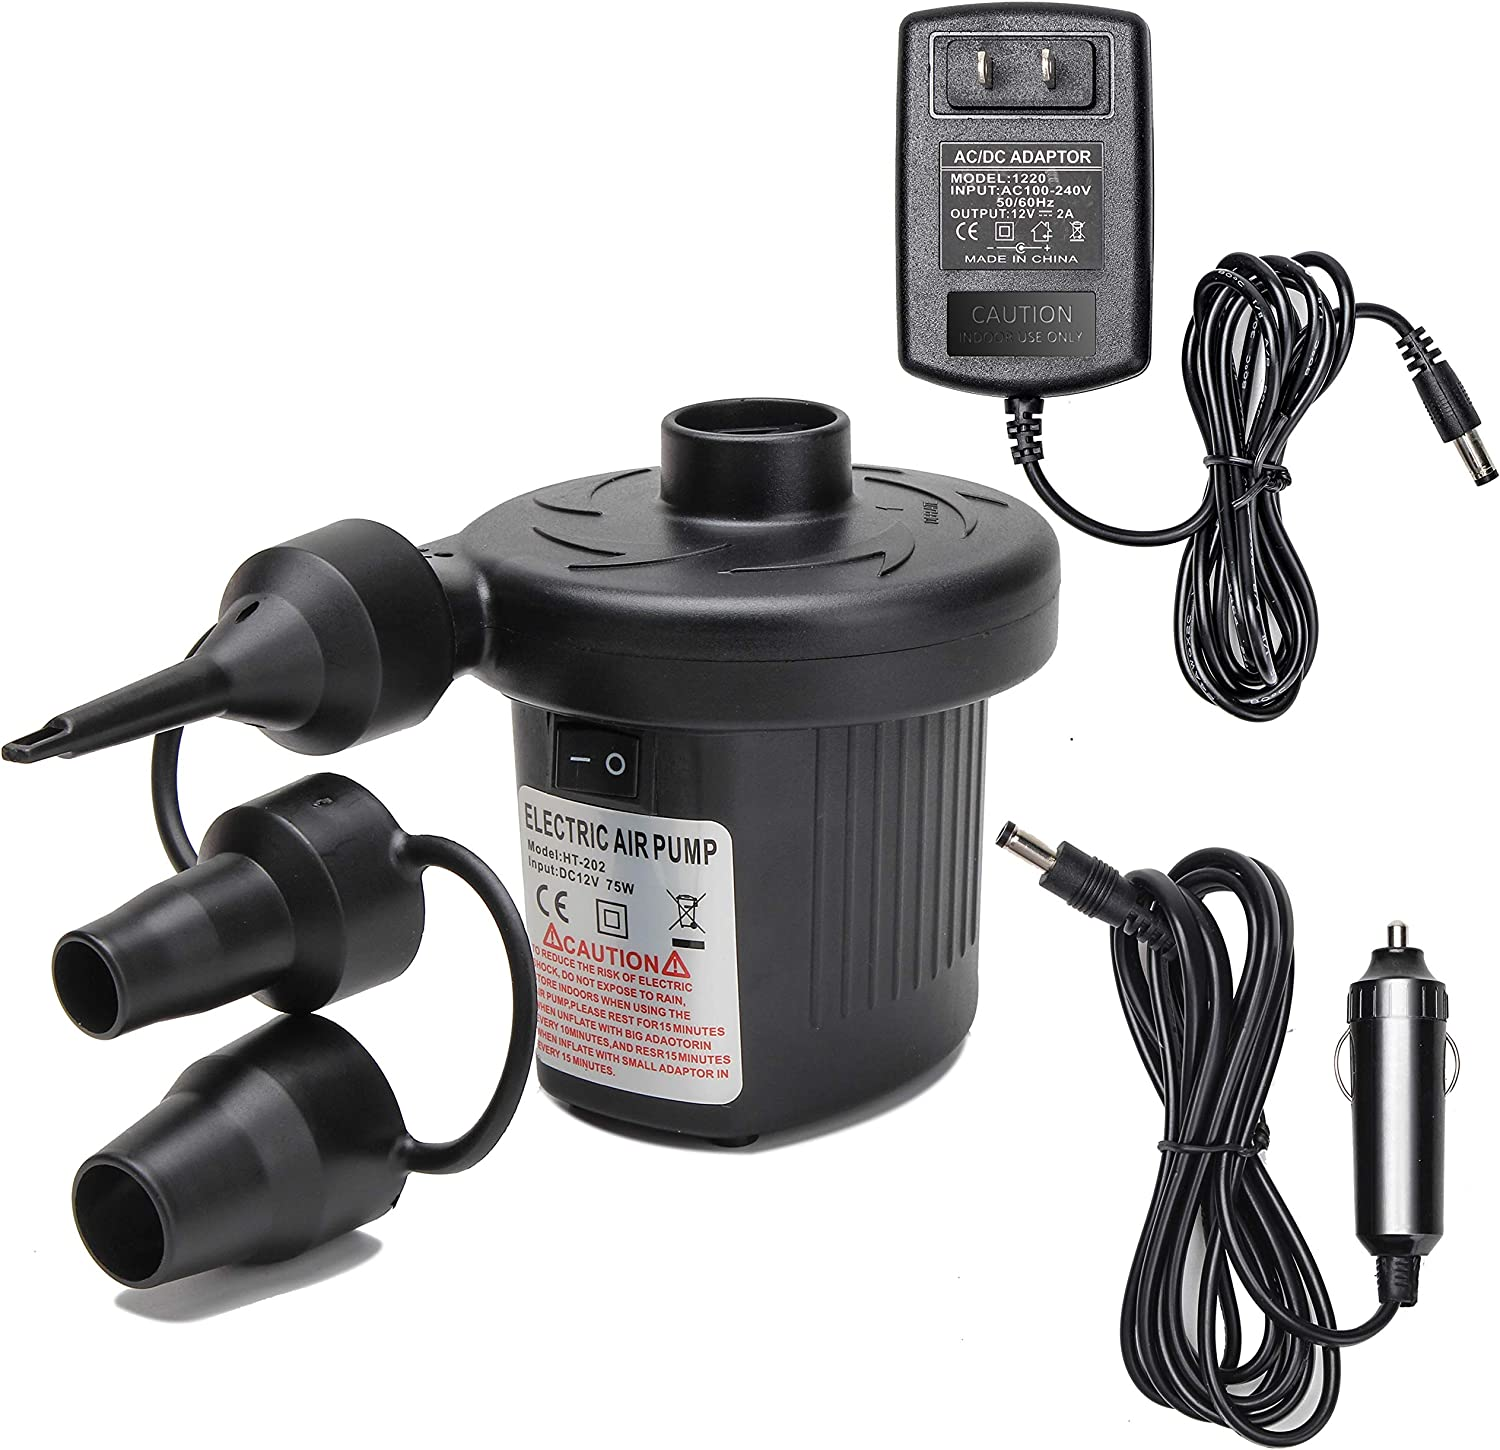 Electric Air Pump,Moonet Portable Quick-Fill Air Pump with 3 Nozzles, 110V AC/12V DC Deflates and Inflates for Swimming Ring, Inflatable Furniture, Air Beds, Air Boats, Outdoor Camping